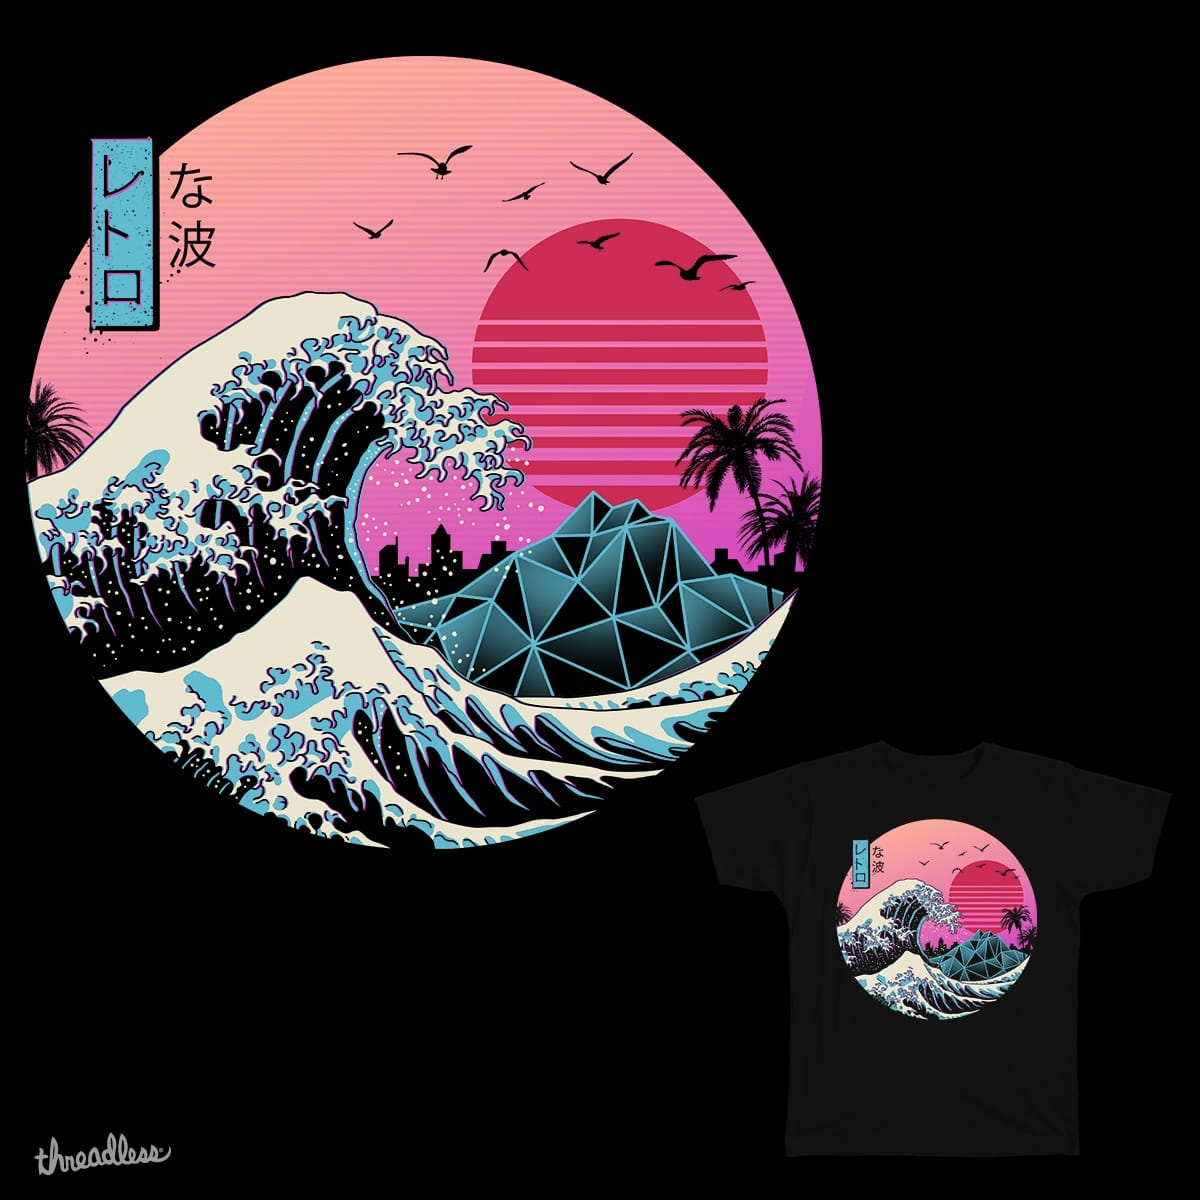 The Great Retro Wave by vptrinidad021 on Threadless